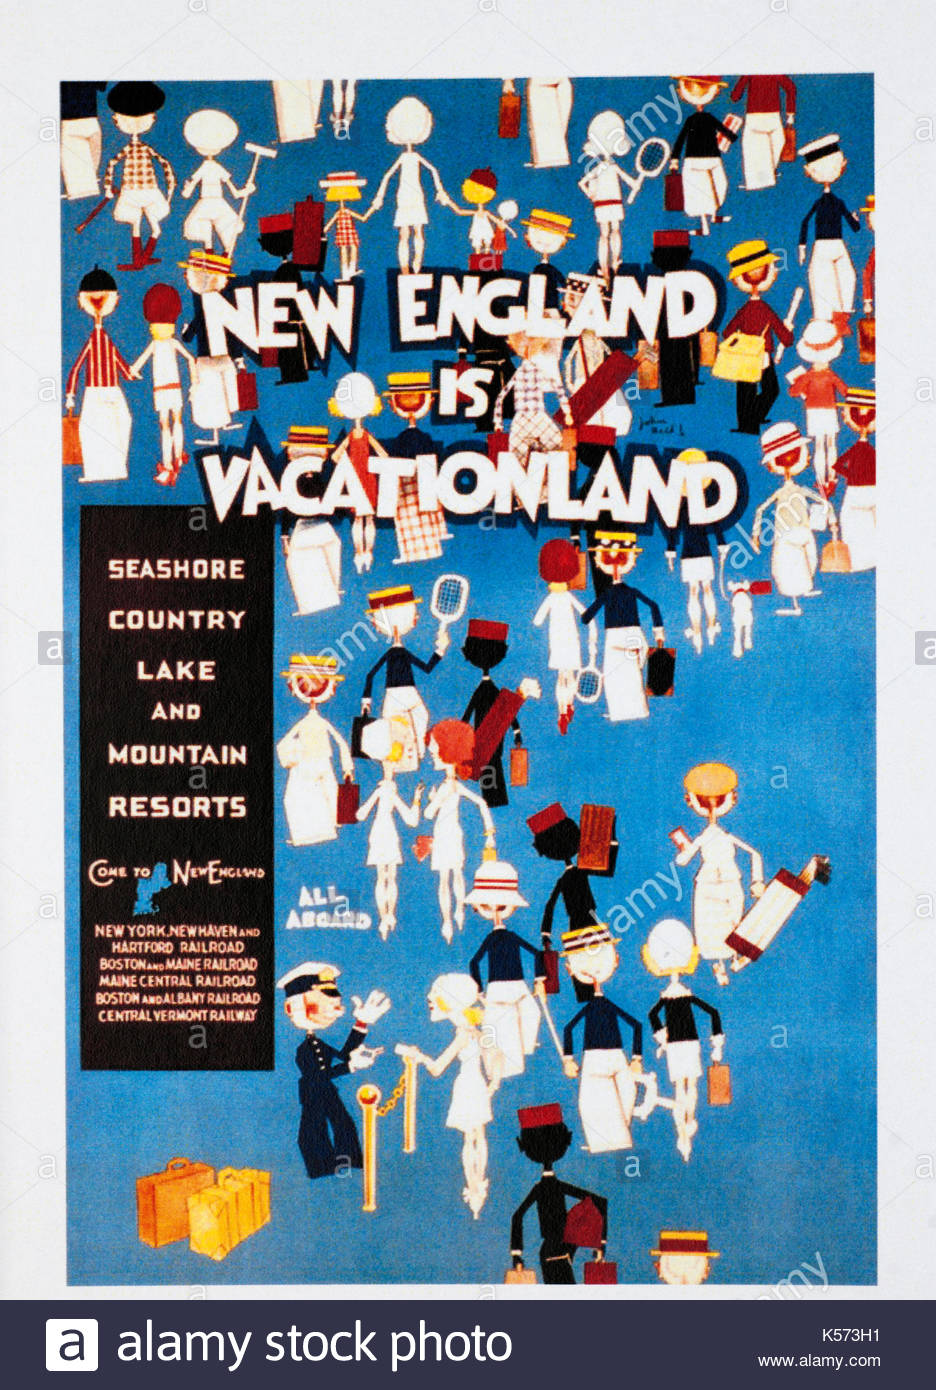 Vintage travel poster advertising New England - Stock Image